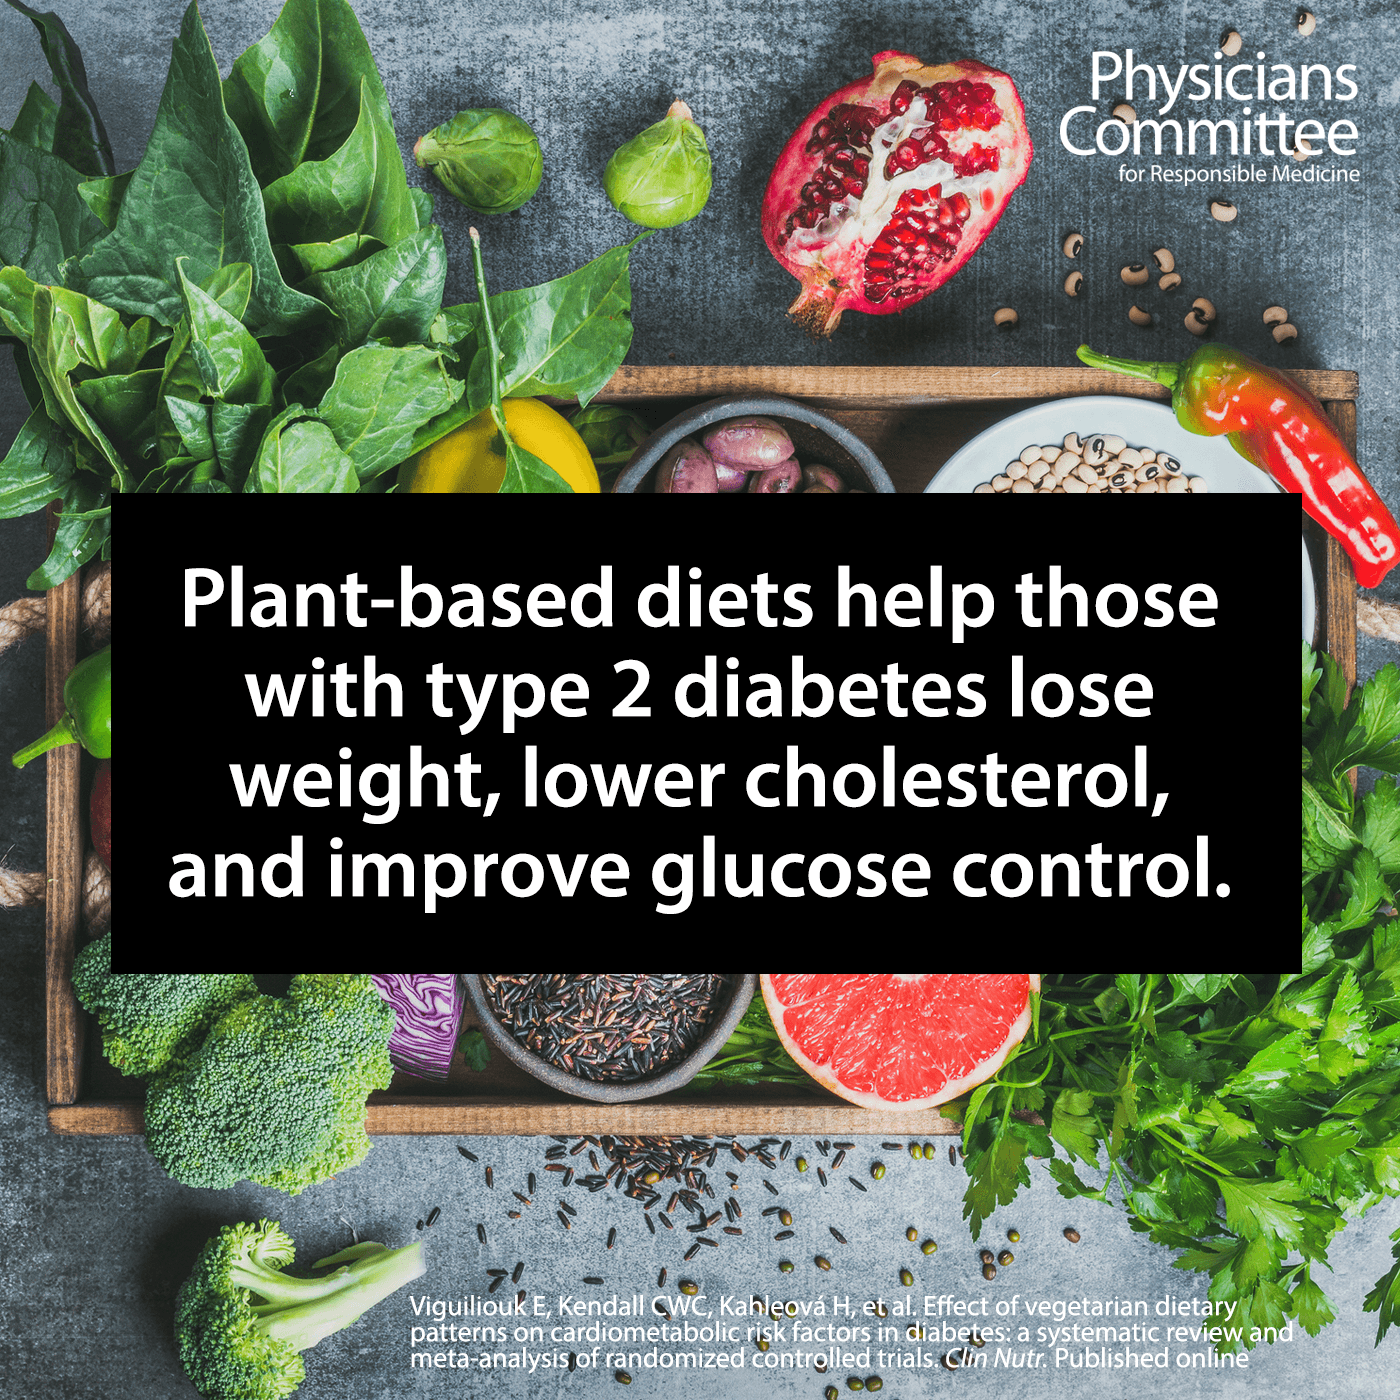 diabetes and plant-based diets